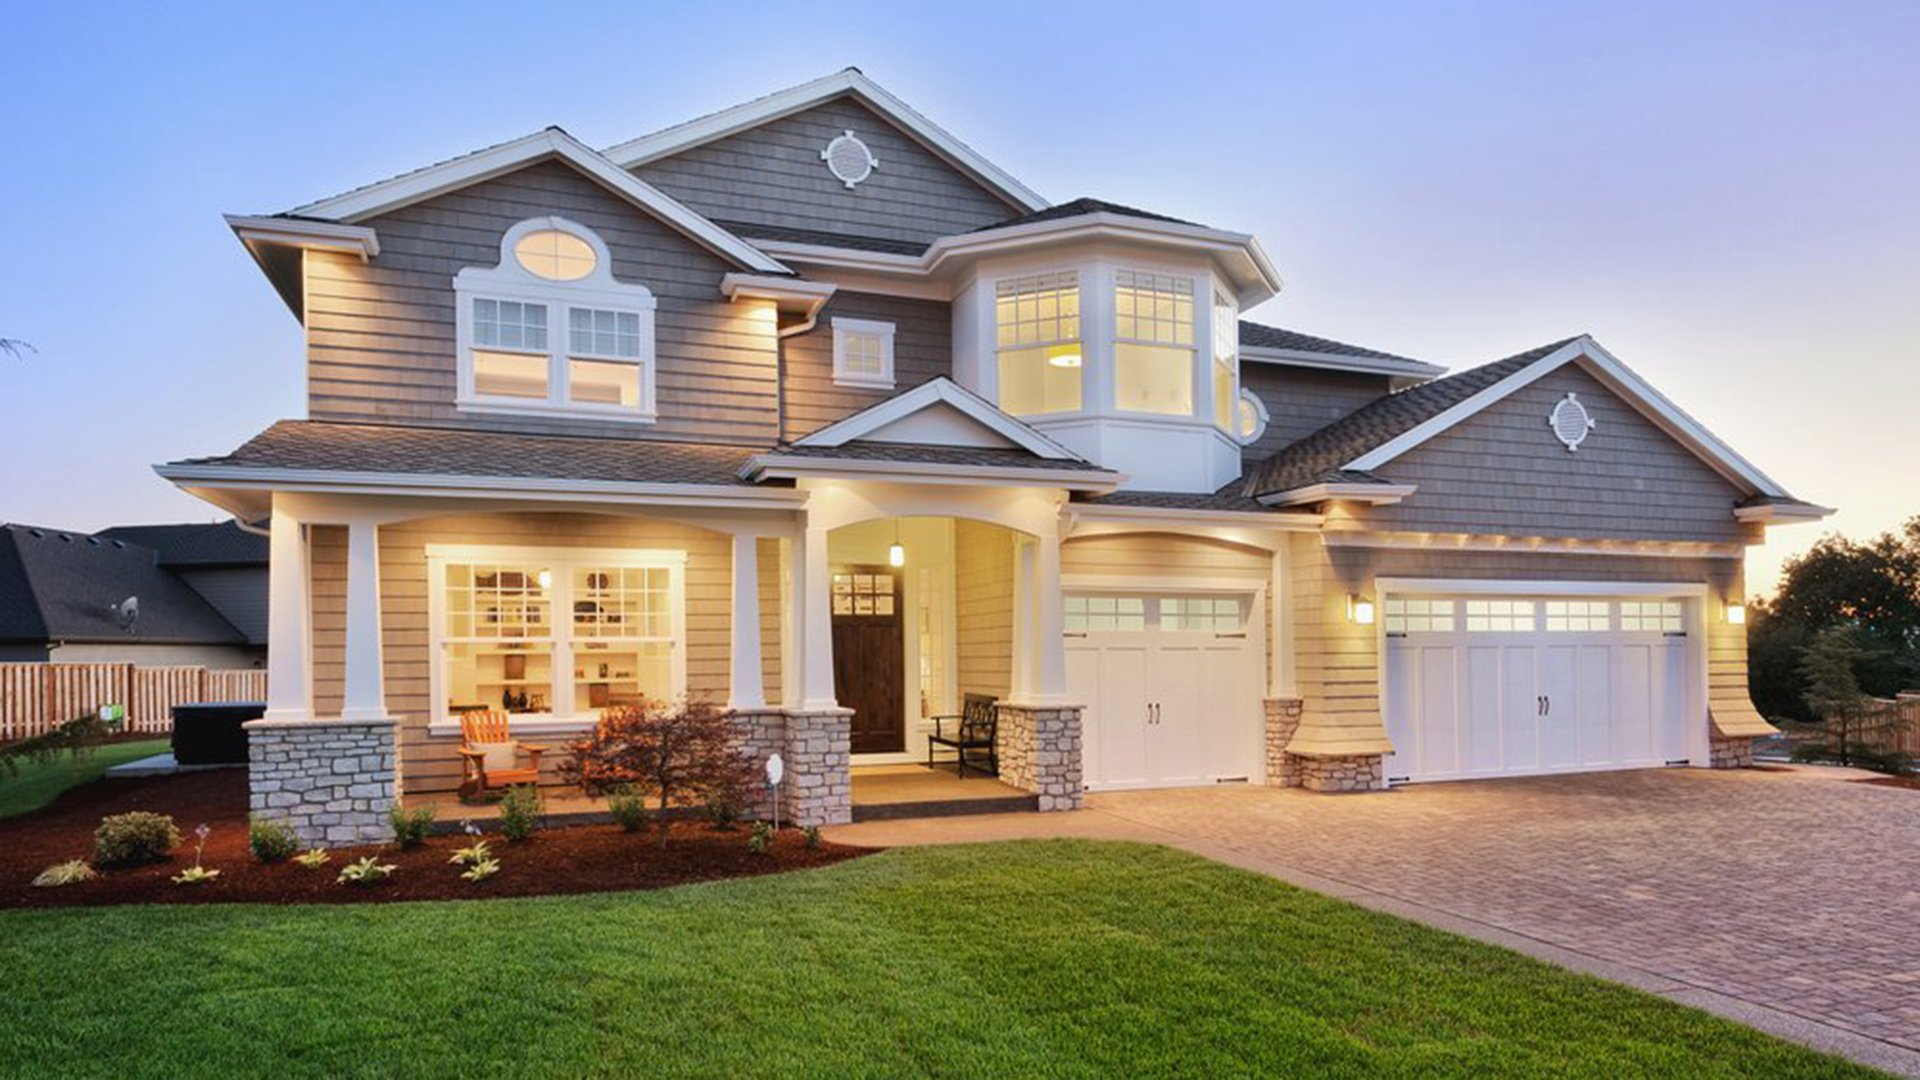 Handy Do It Yourself Guidelines to help you Produce a More Energy-efficient Home